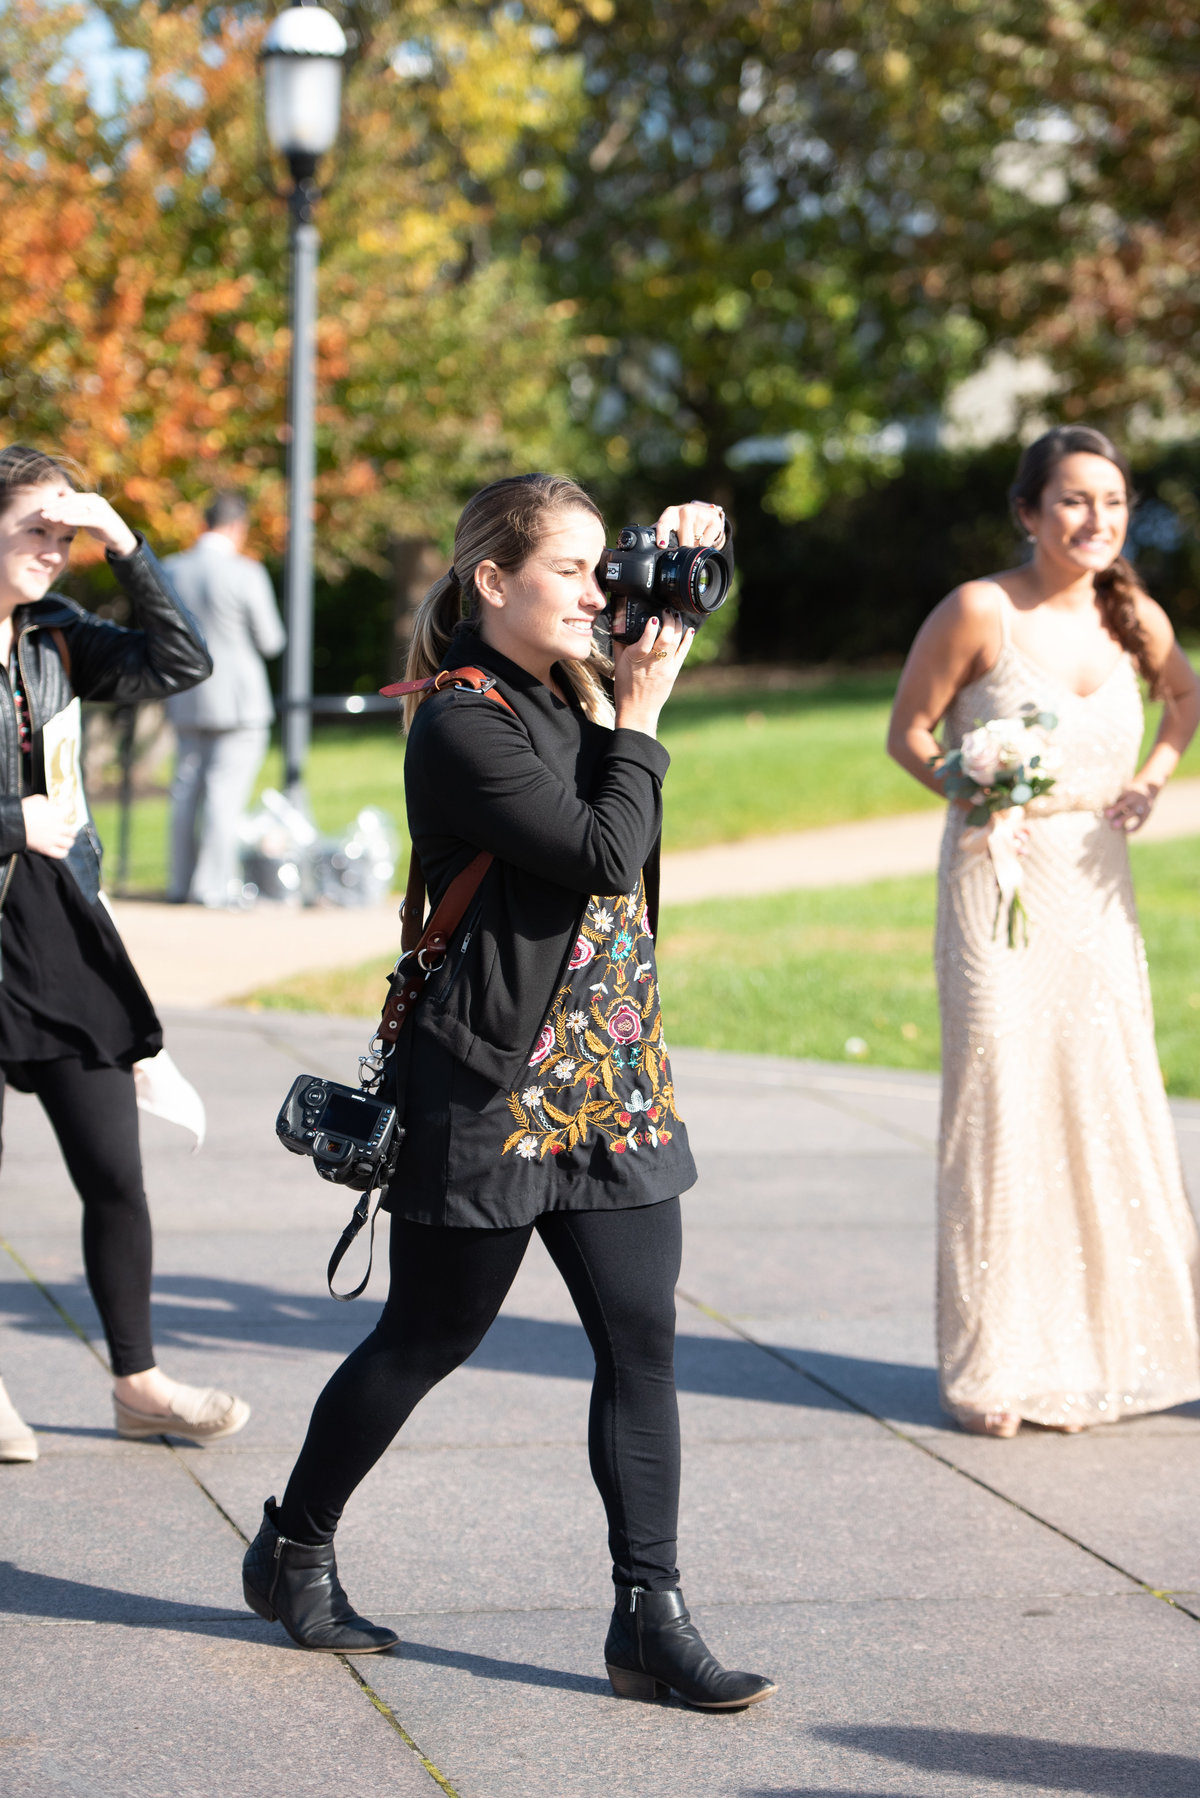 Ashley Mac Photographs - New Jersey Weddings - Behind the Scenes of a Wedding - BTS-79